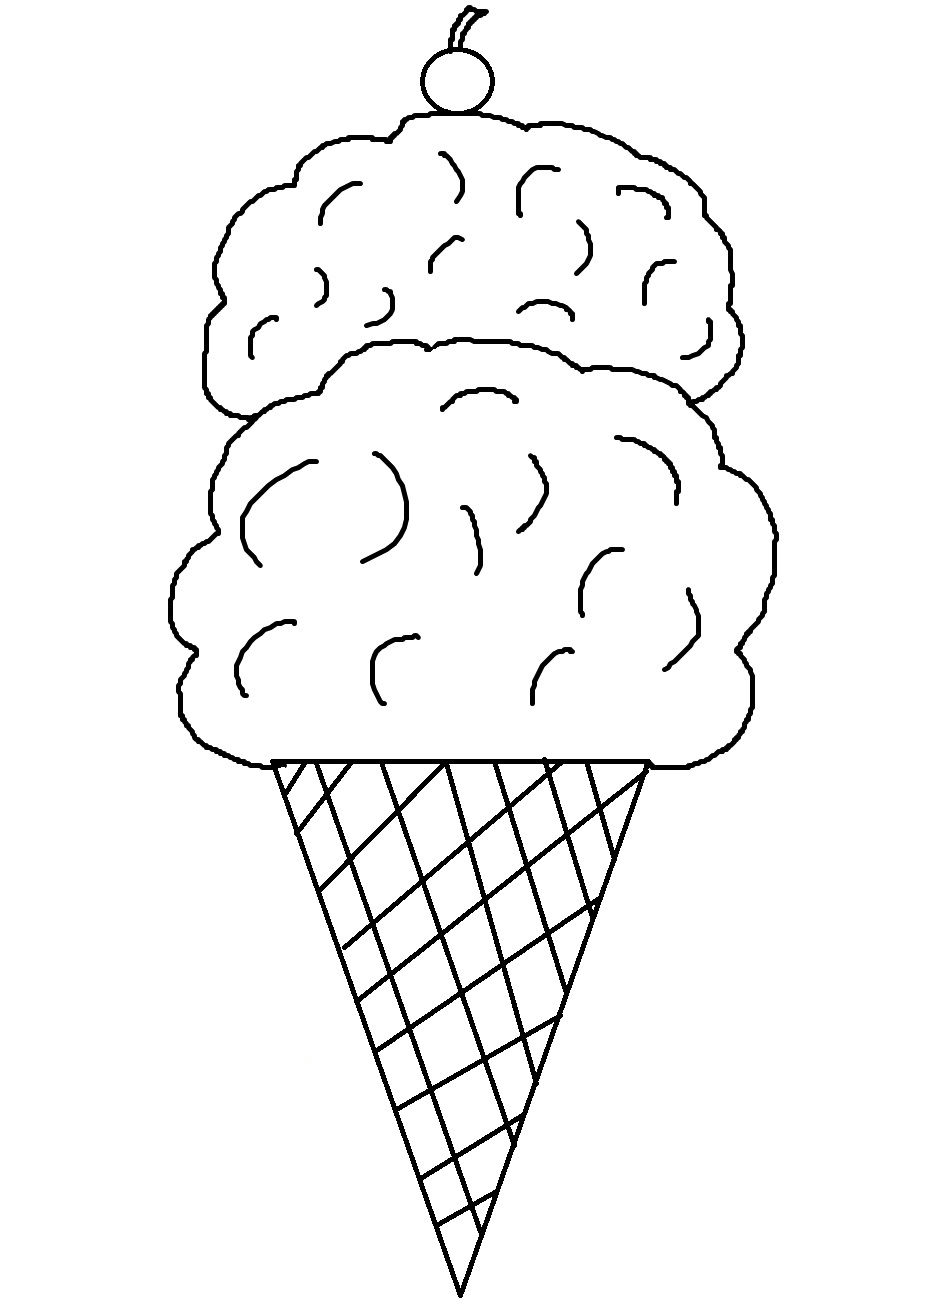 ice cream coloring template free printable ice cream coloring pages for kids template cream coloring ice